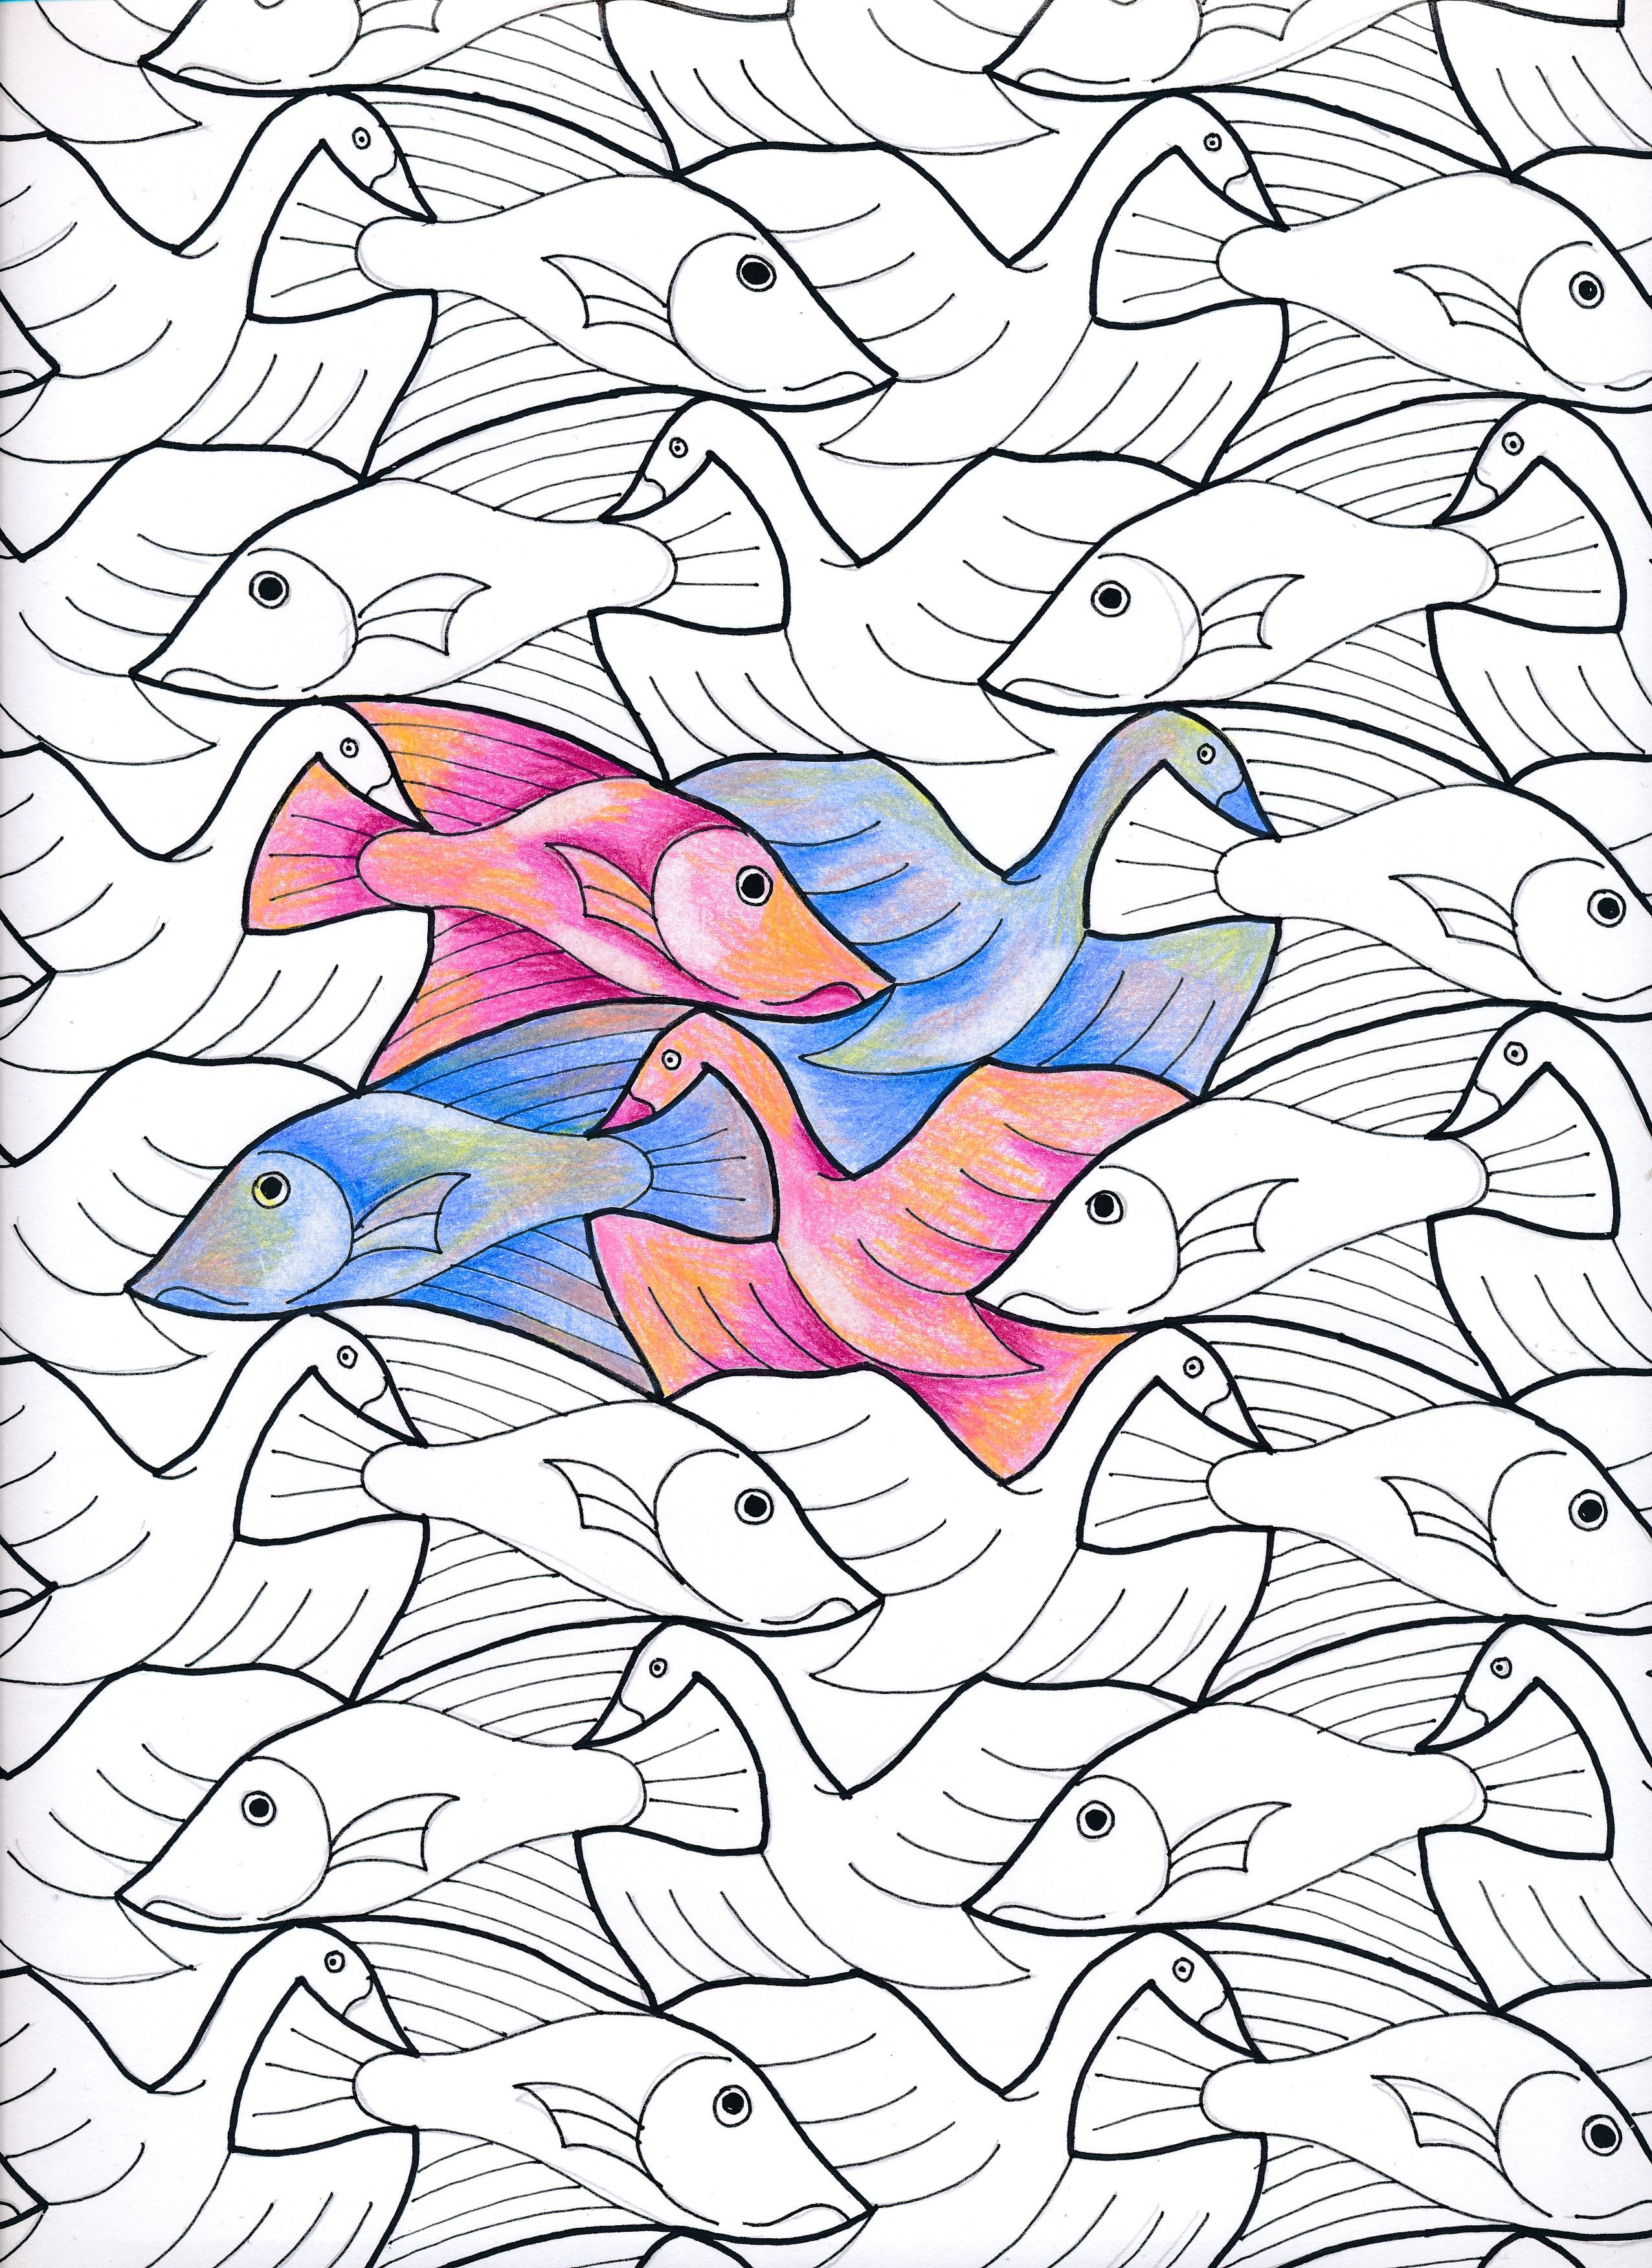 MC Escher 34a my interpretation #escher #tessellation #tiling ...